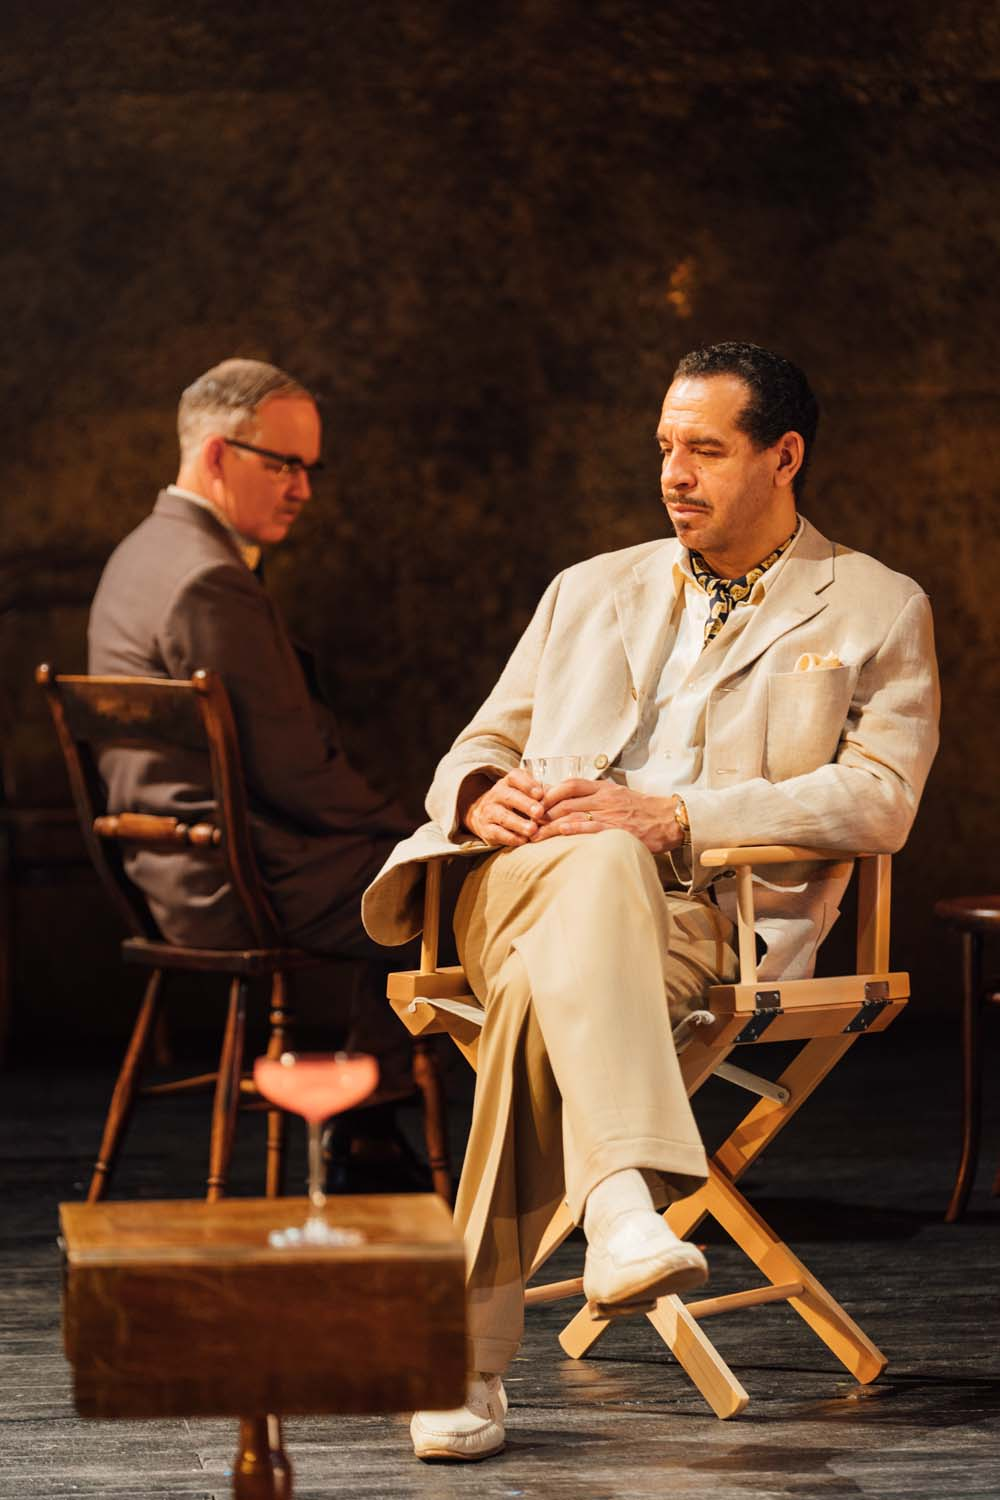 Colin R Campbell and Joe Dixon star in the Agatha Christie whodunnit, The Mirror Crack'd which runs at Cardiff's New Theatre from March 26 to April 6, 2019. Photo Helen Murray.